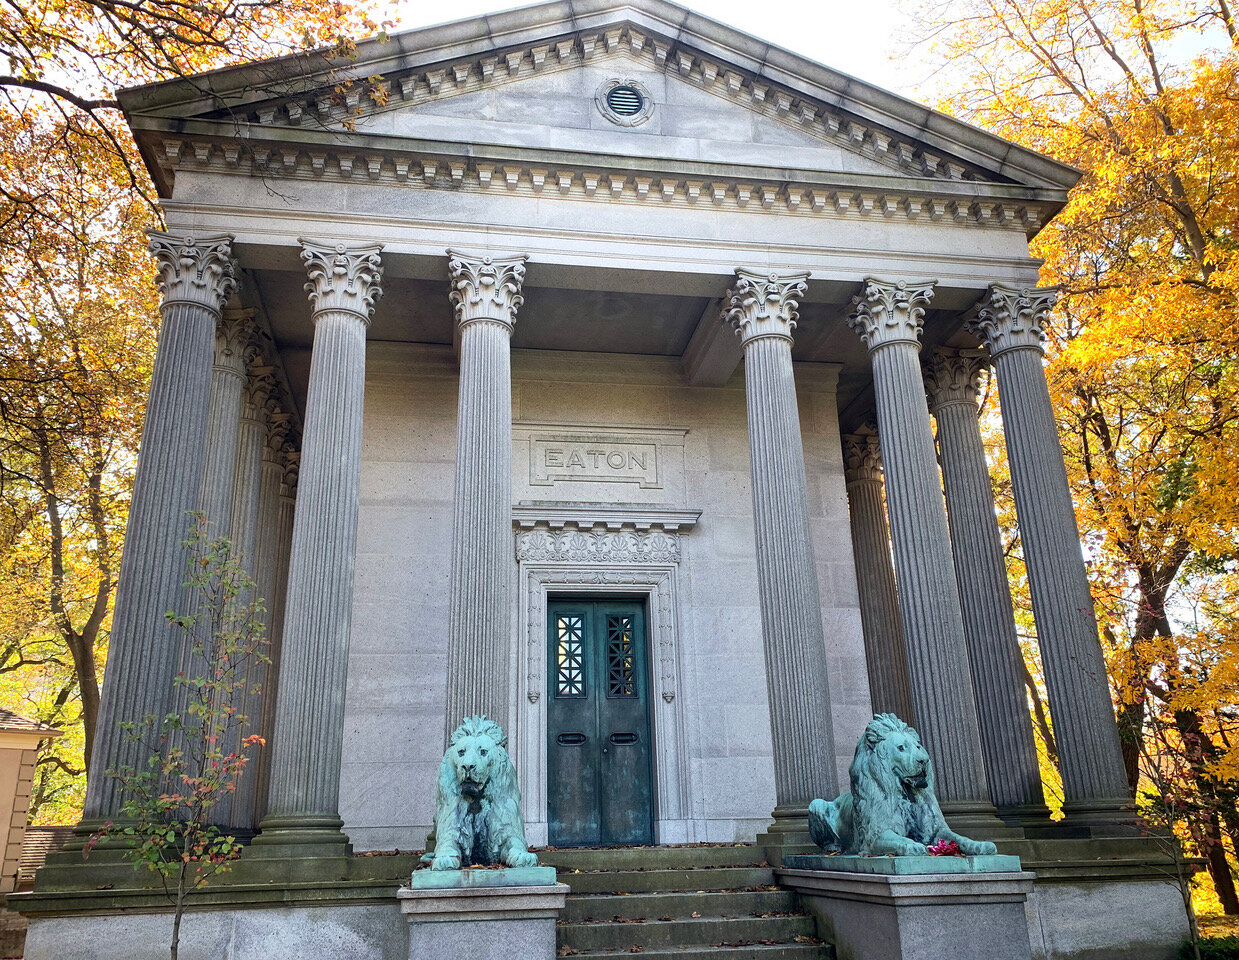 The Eaton family mausoleum towers over Mount Pleasant Cemetery on Oct. 19. (CanCulture/Annemarie Cutruzzola)